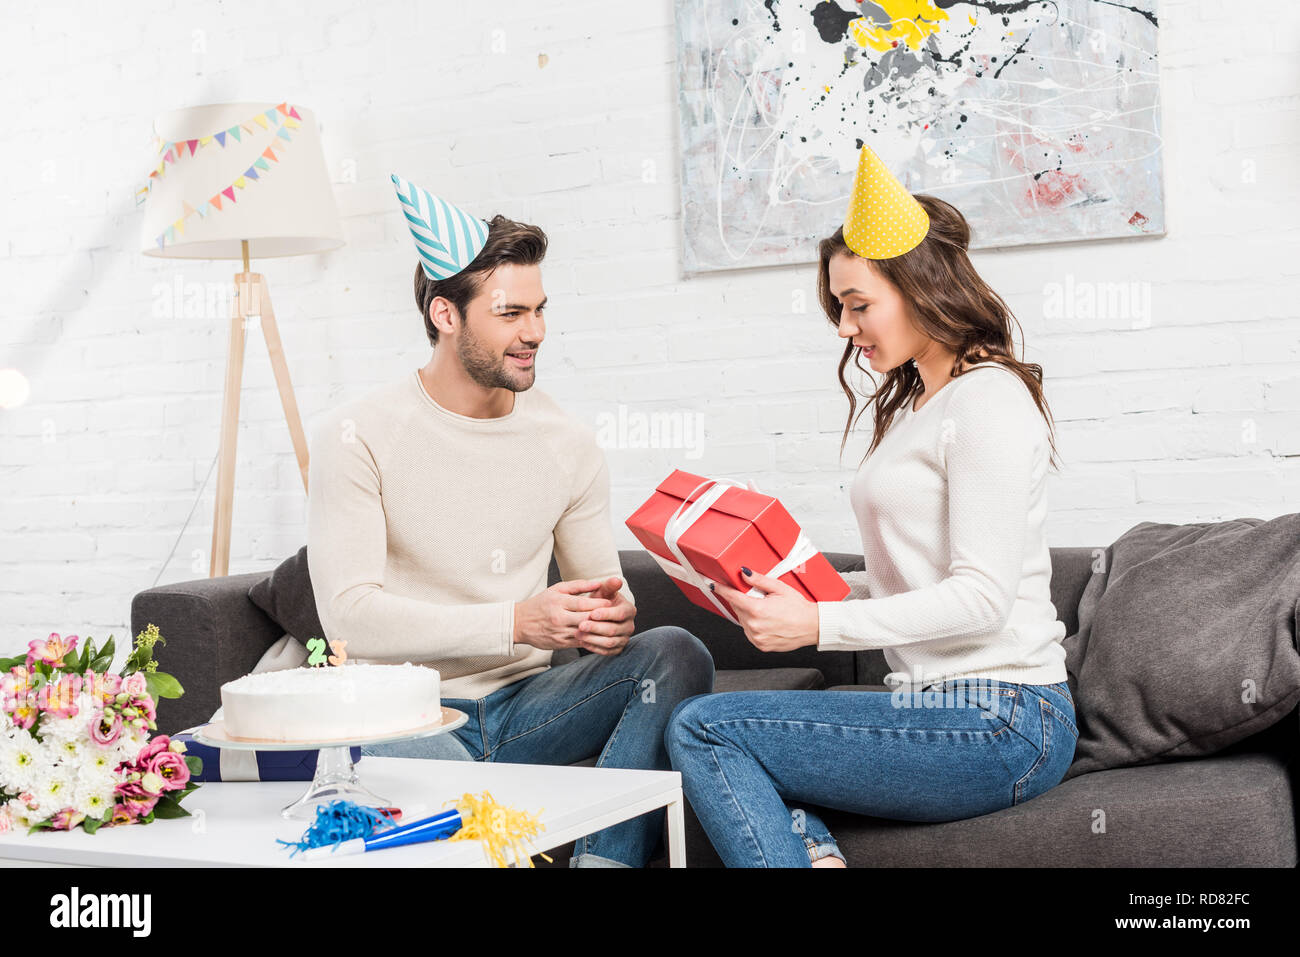 Couple Celebrating Birthday And Man Presenting Gift Box To Woman In Living Room